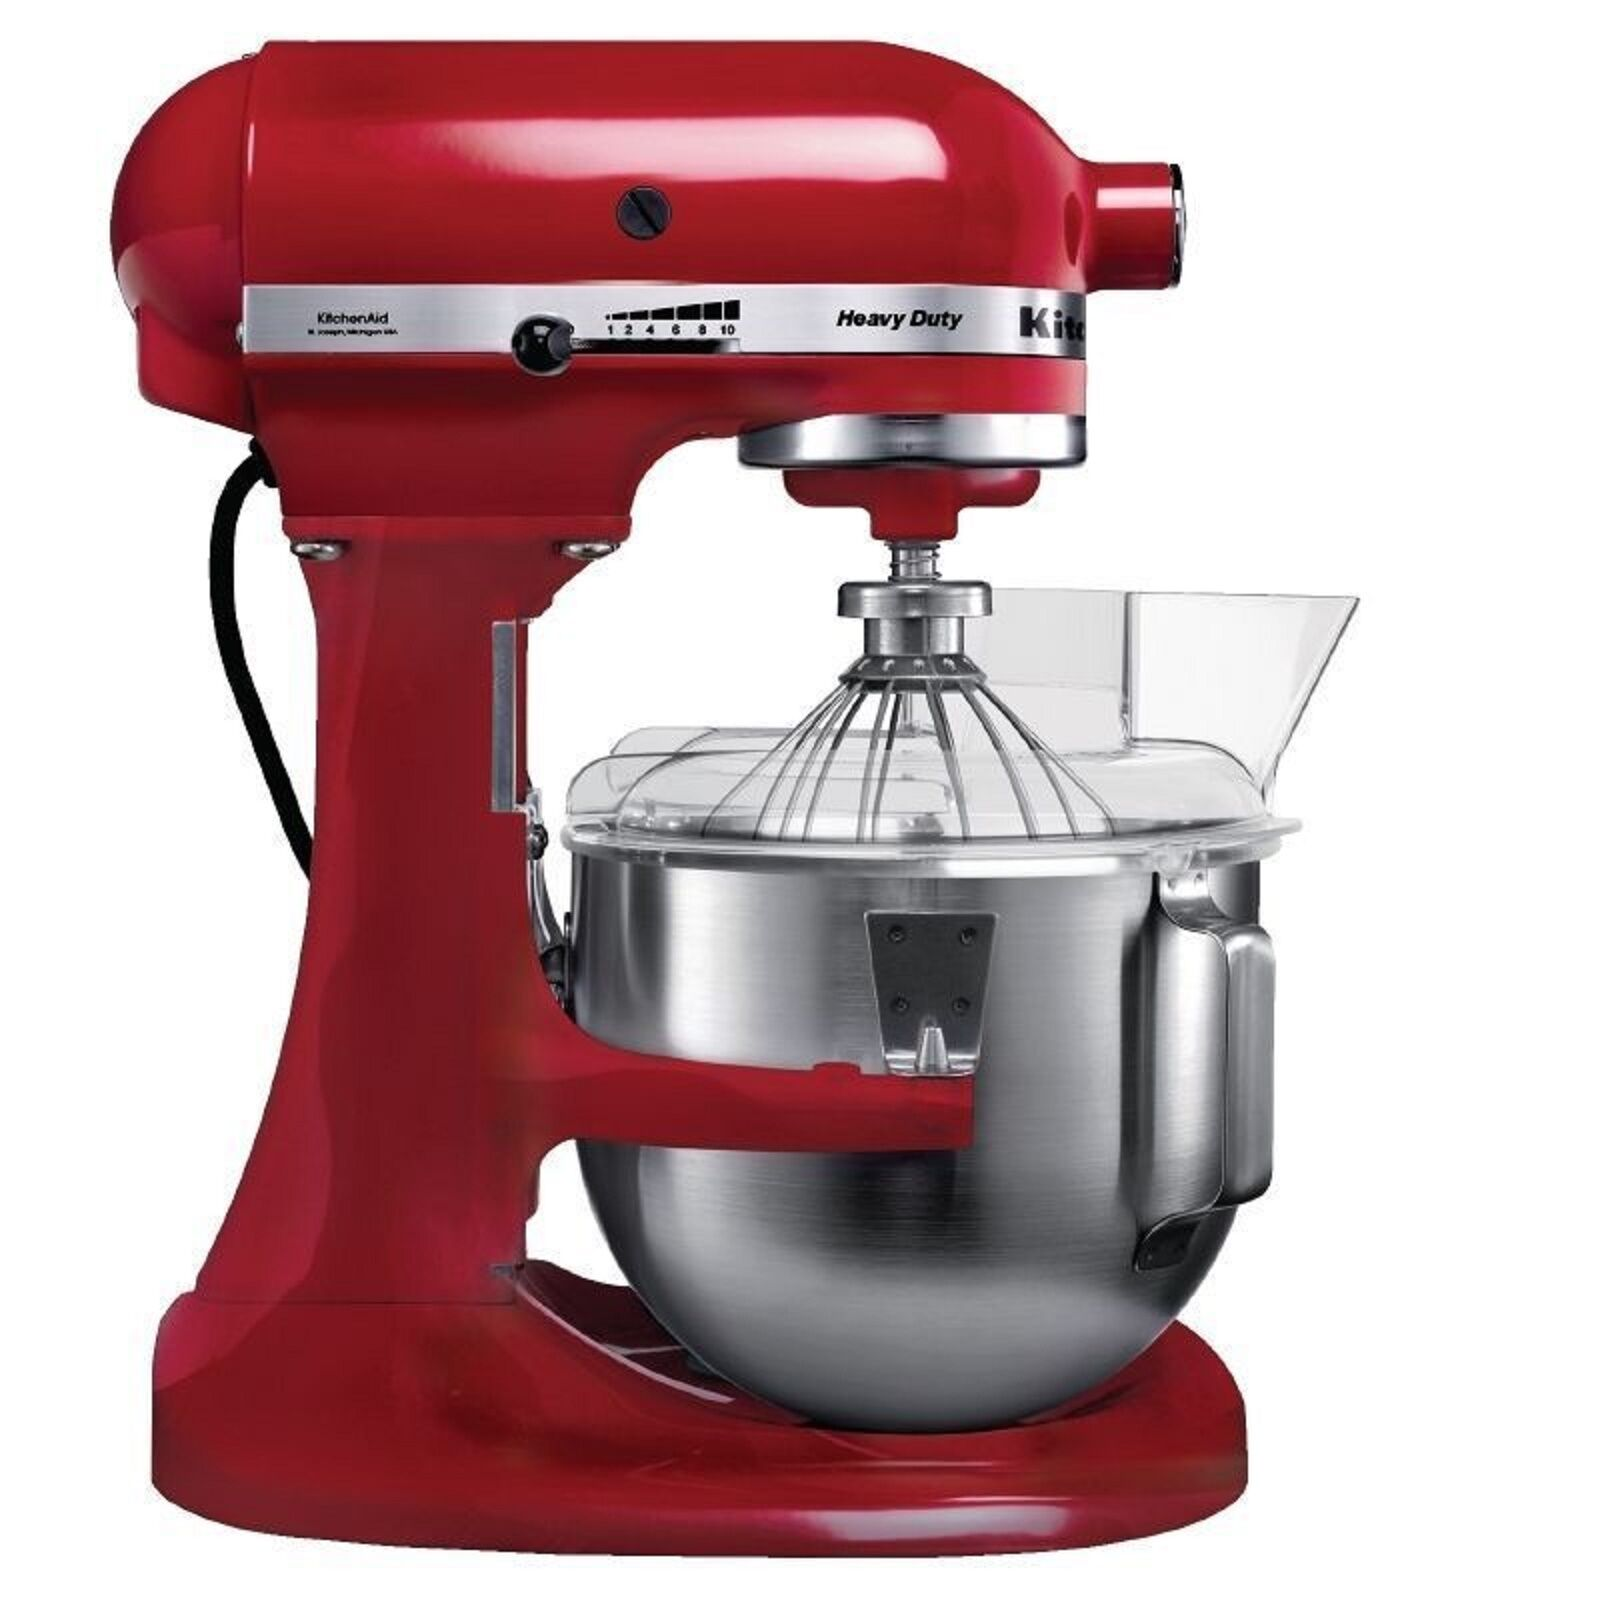 kitchenaid heavy duty 5kpm5eer k chenmaschine rot neu ovp eur 454 00 picclick de. Black Bedroom Furniture Sets. Home Design Ideas